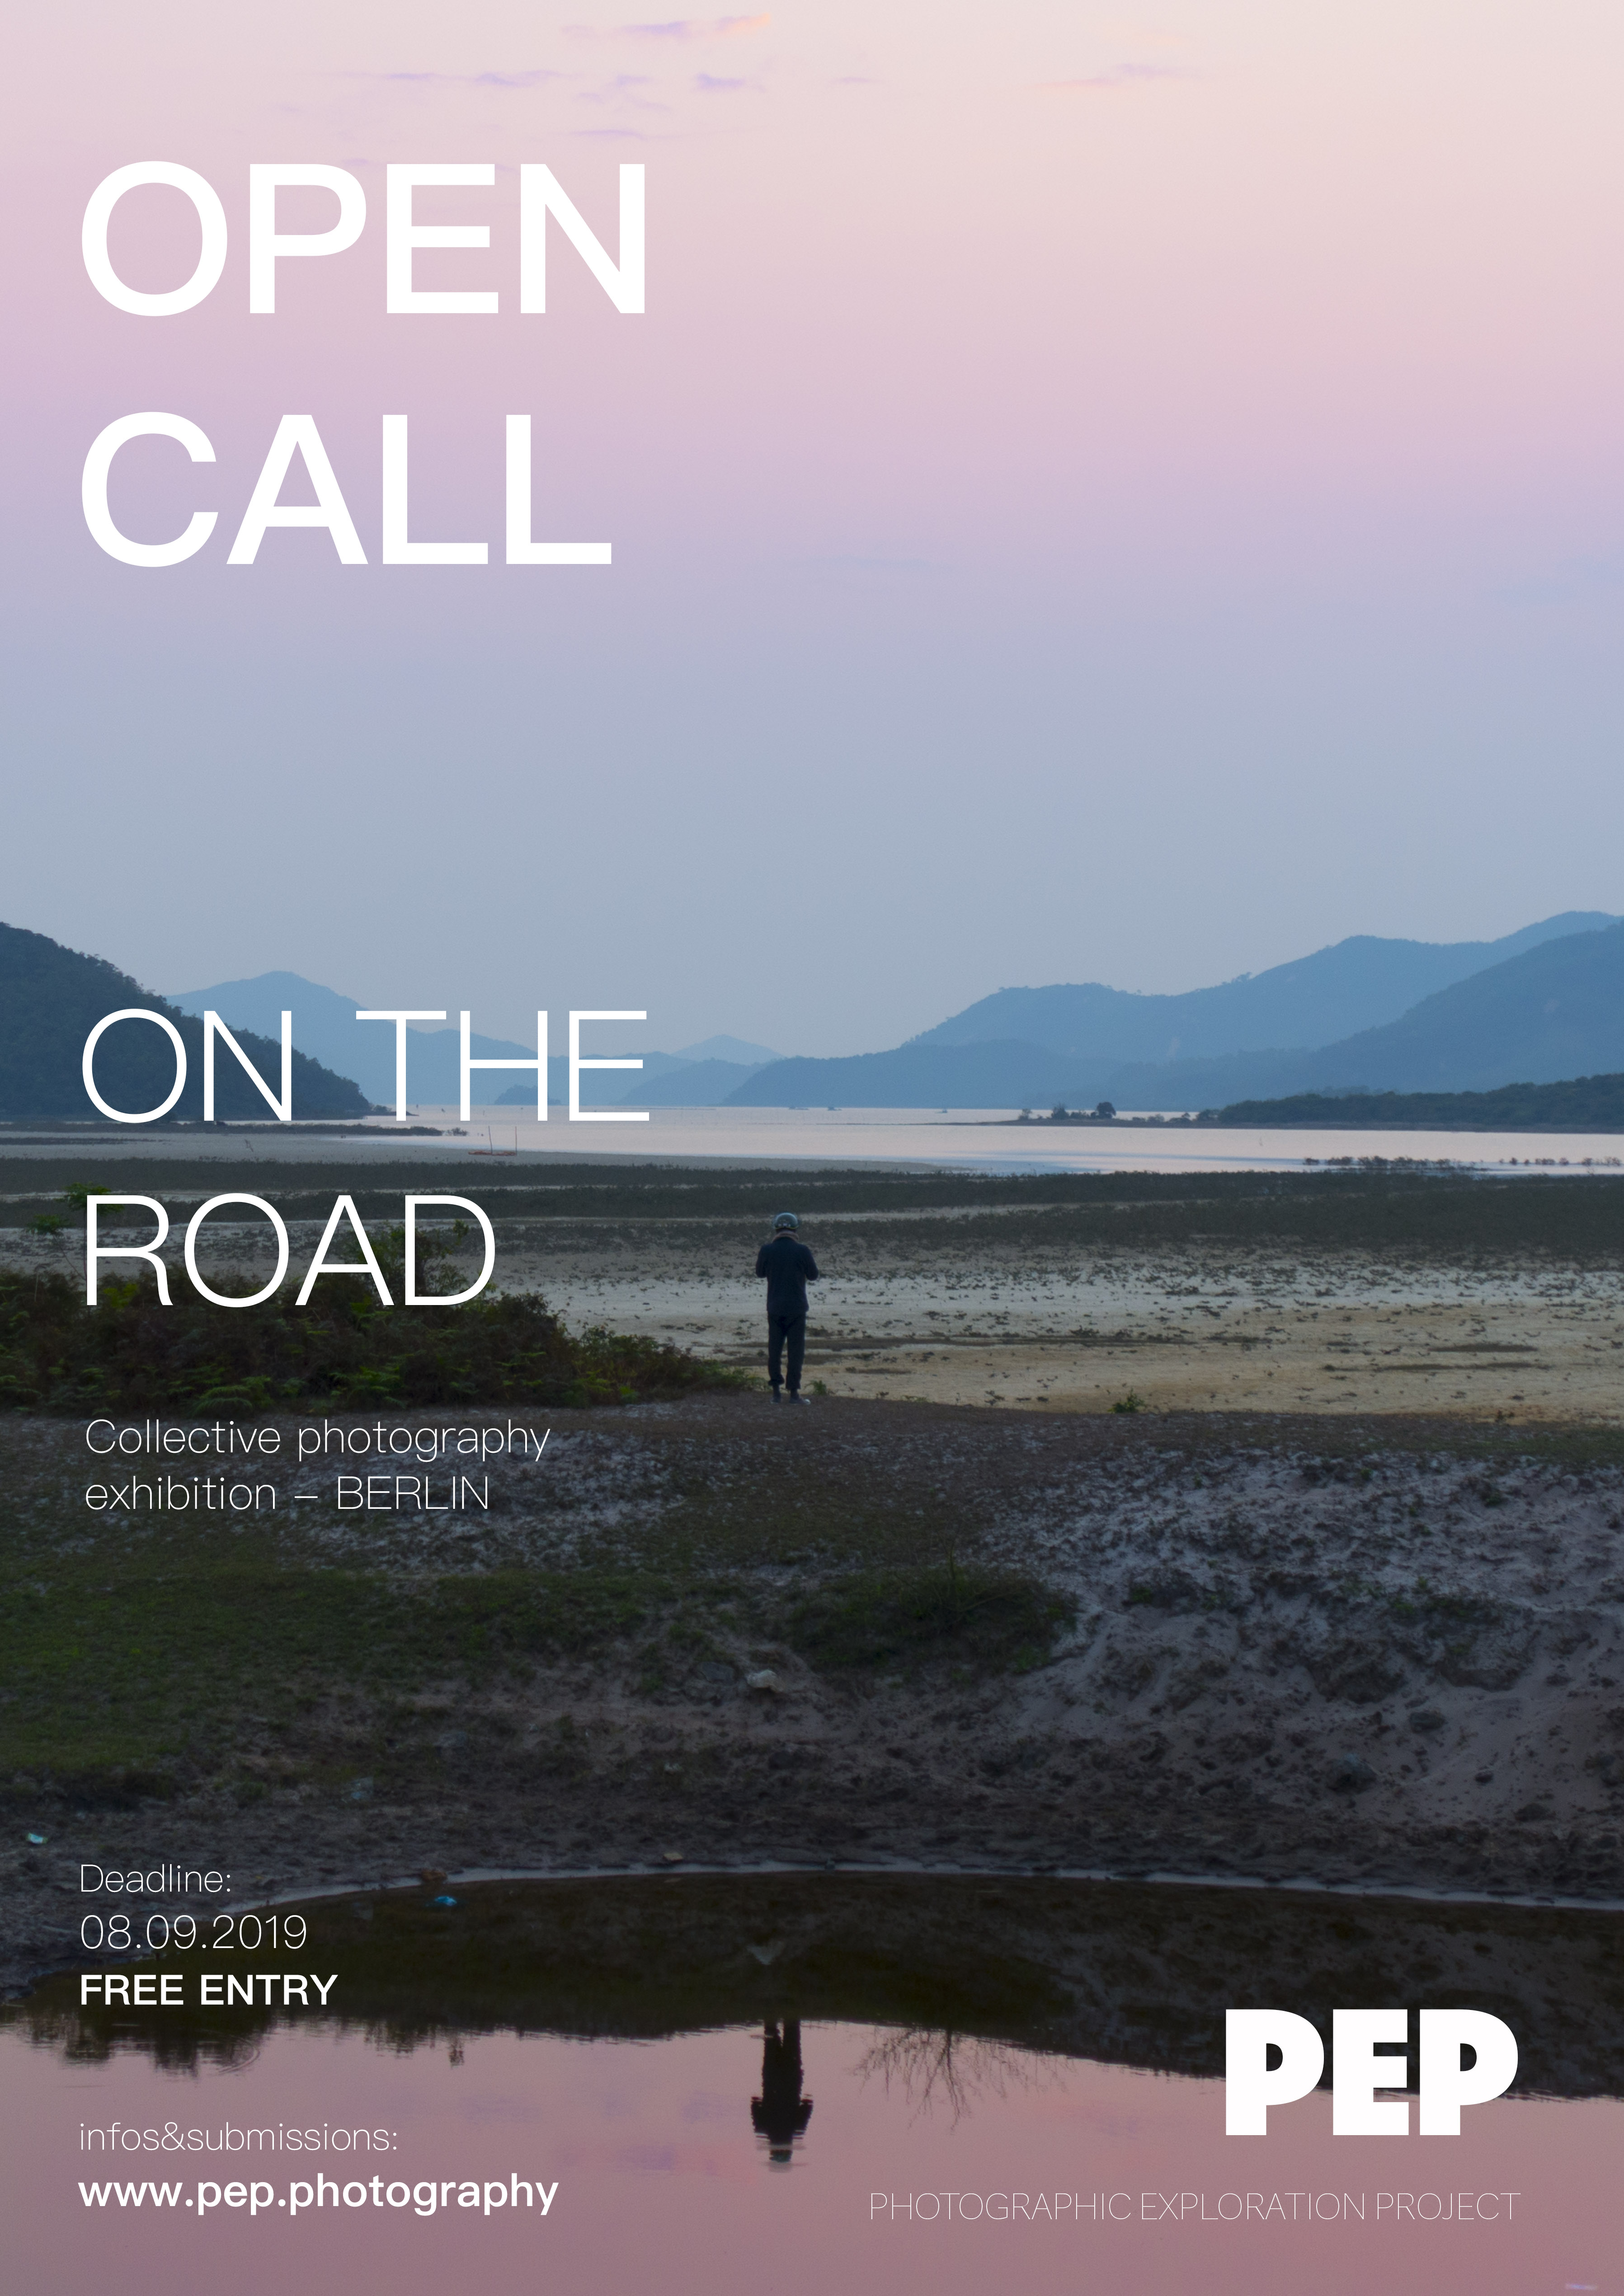 On the road – take part in a collective photography exhibition in Berlin - logo